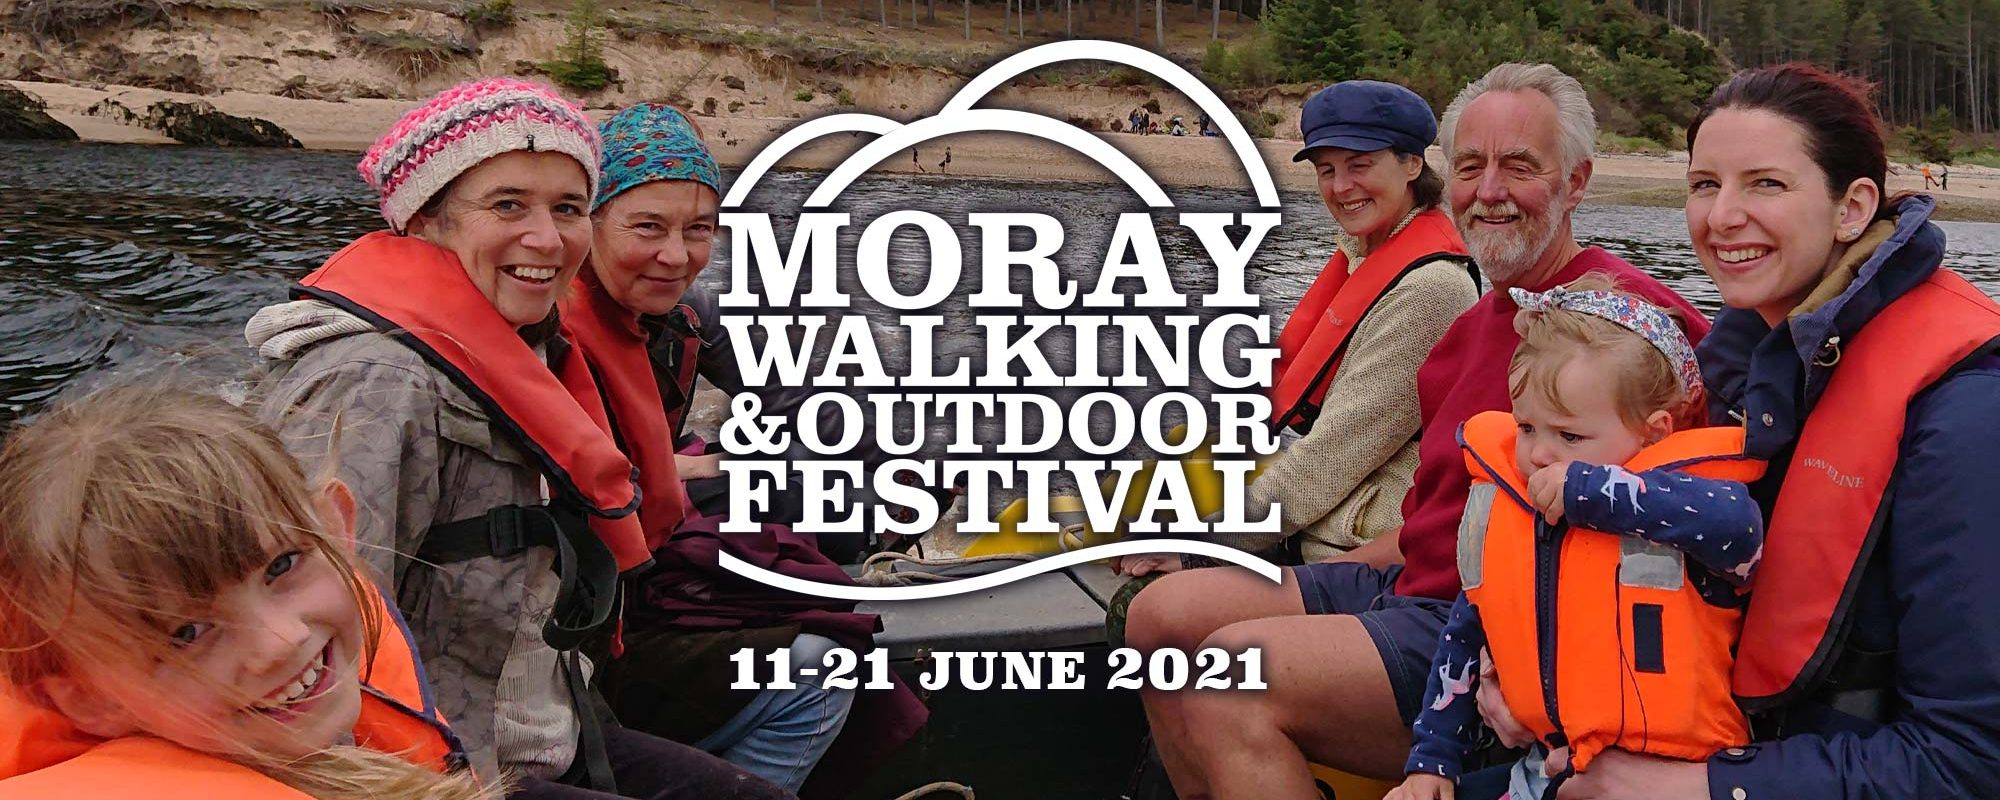 Moray Walking & Outdoor Festival 12-21 June 2020